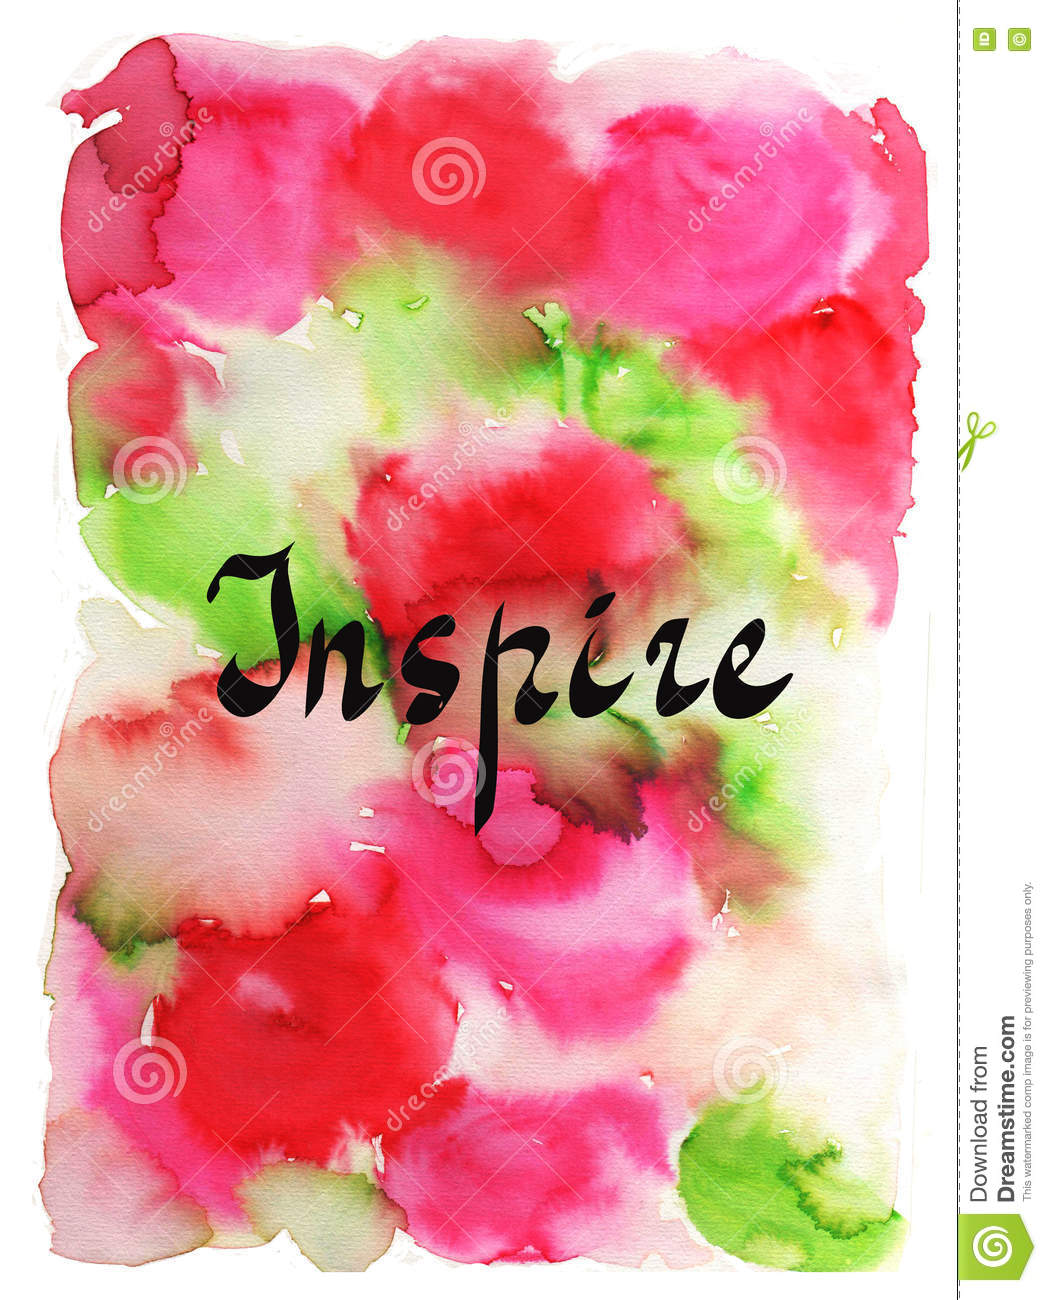 Inspire. Handwritten word on bright colorful watercolor background. Inspirational quote, brush lettering for cards, posters and so